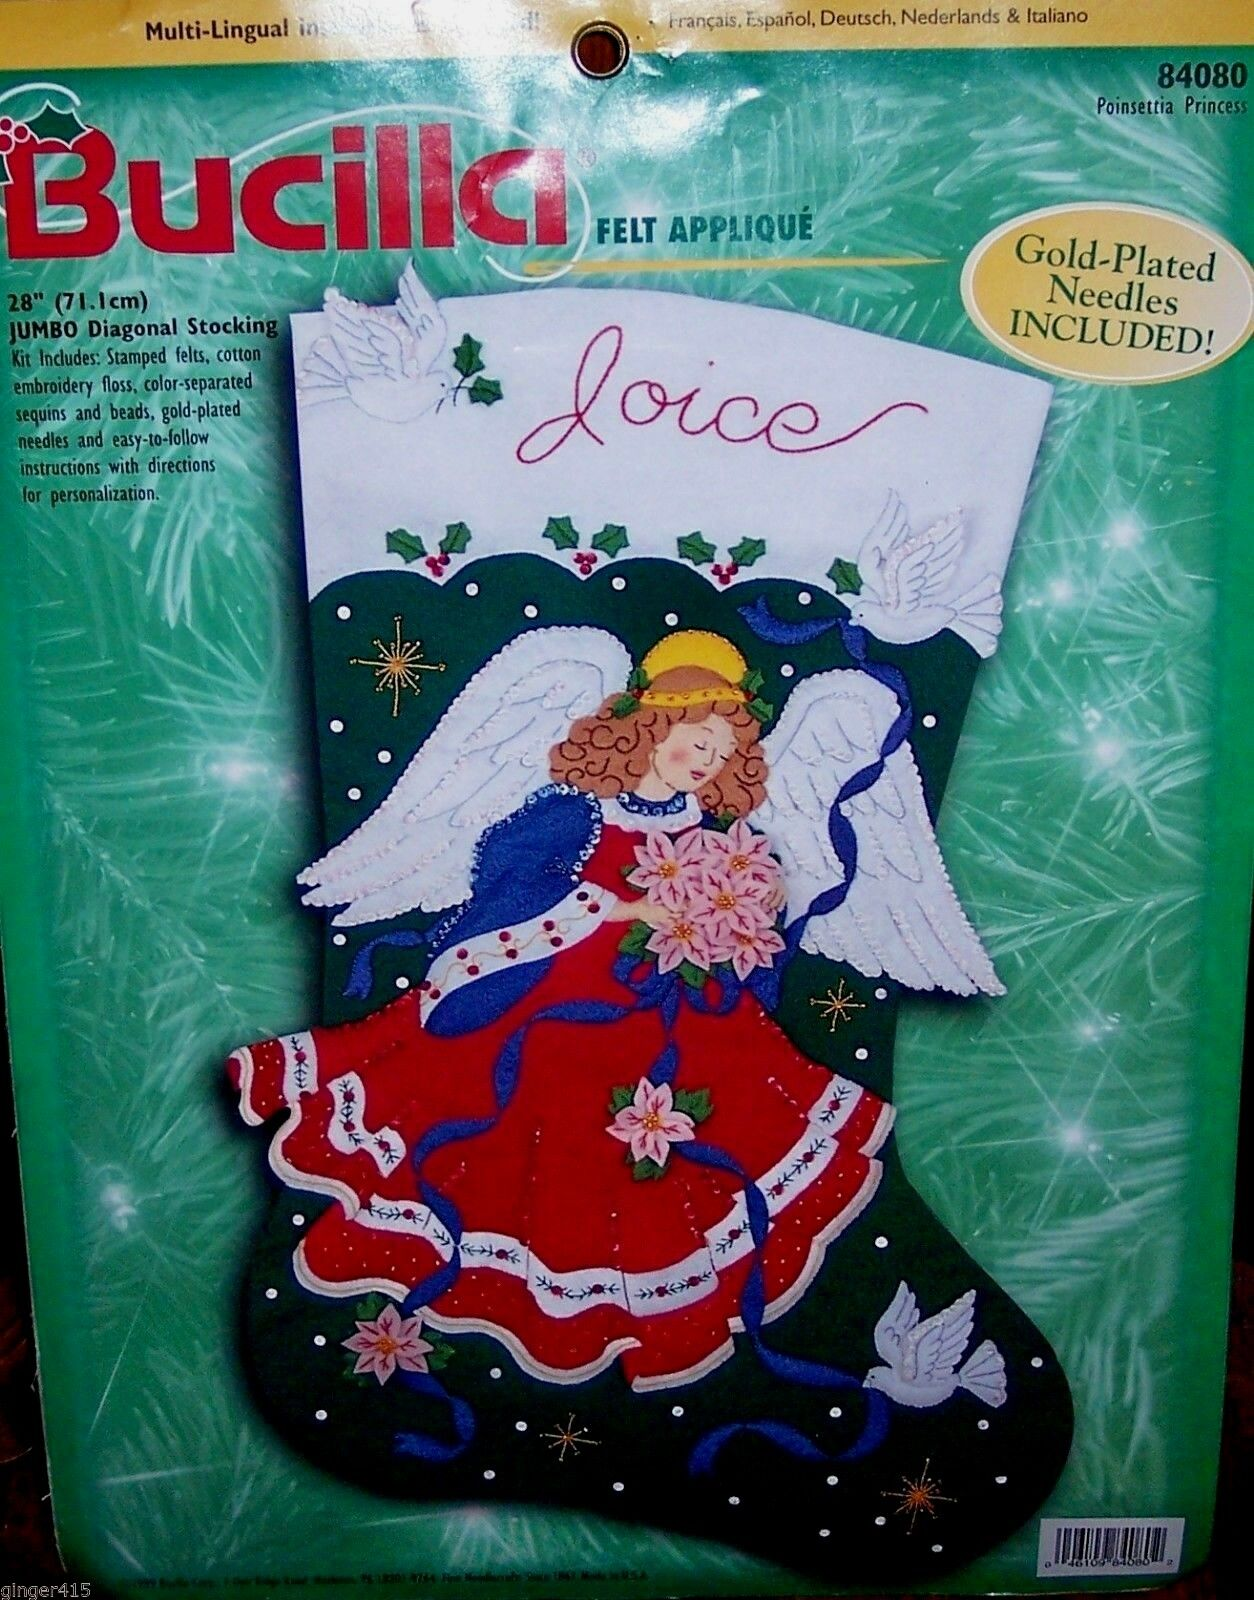 BUCILLA POINSETTIA CELESTIAL ANGEL Felt Christmas Stocking Kit Jumbo ...